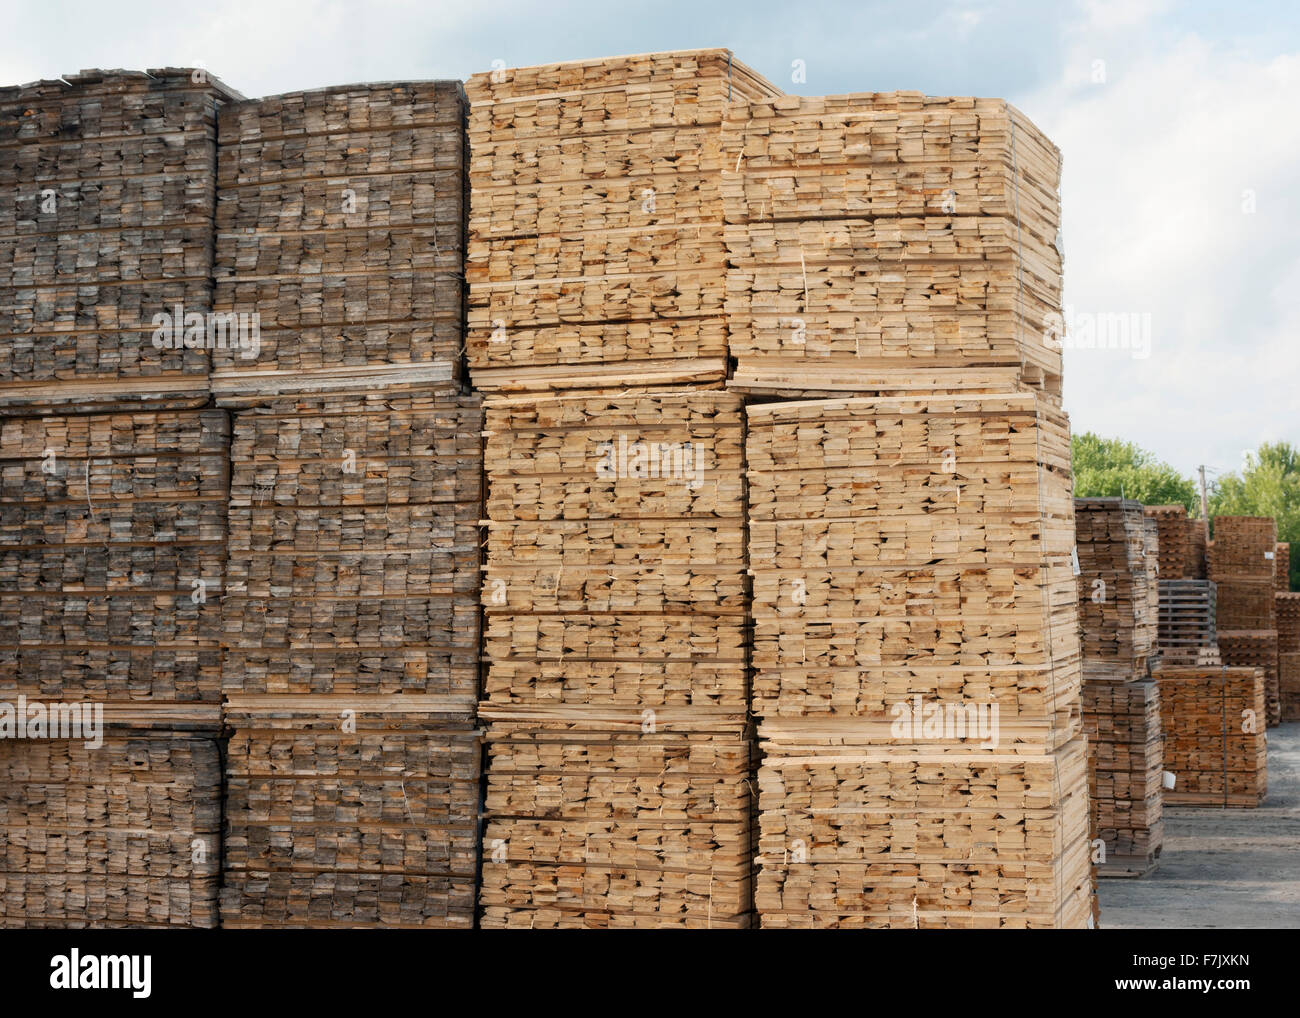 wooden planks stacked - Stock Image